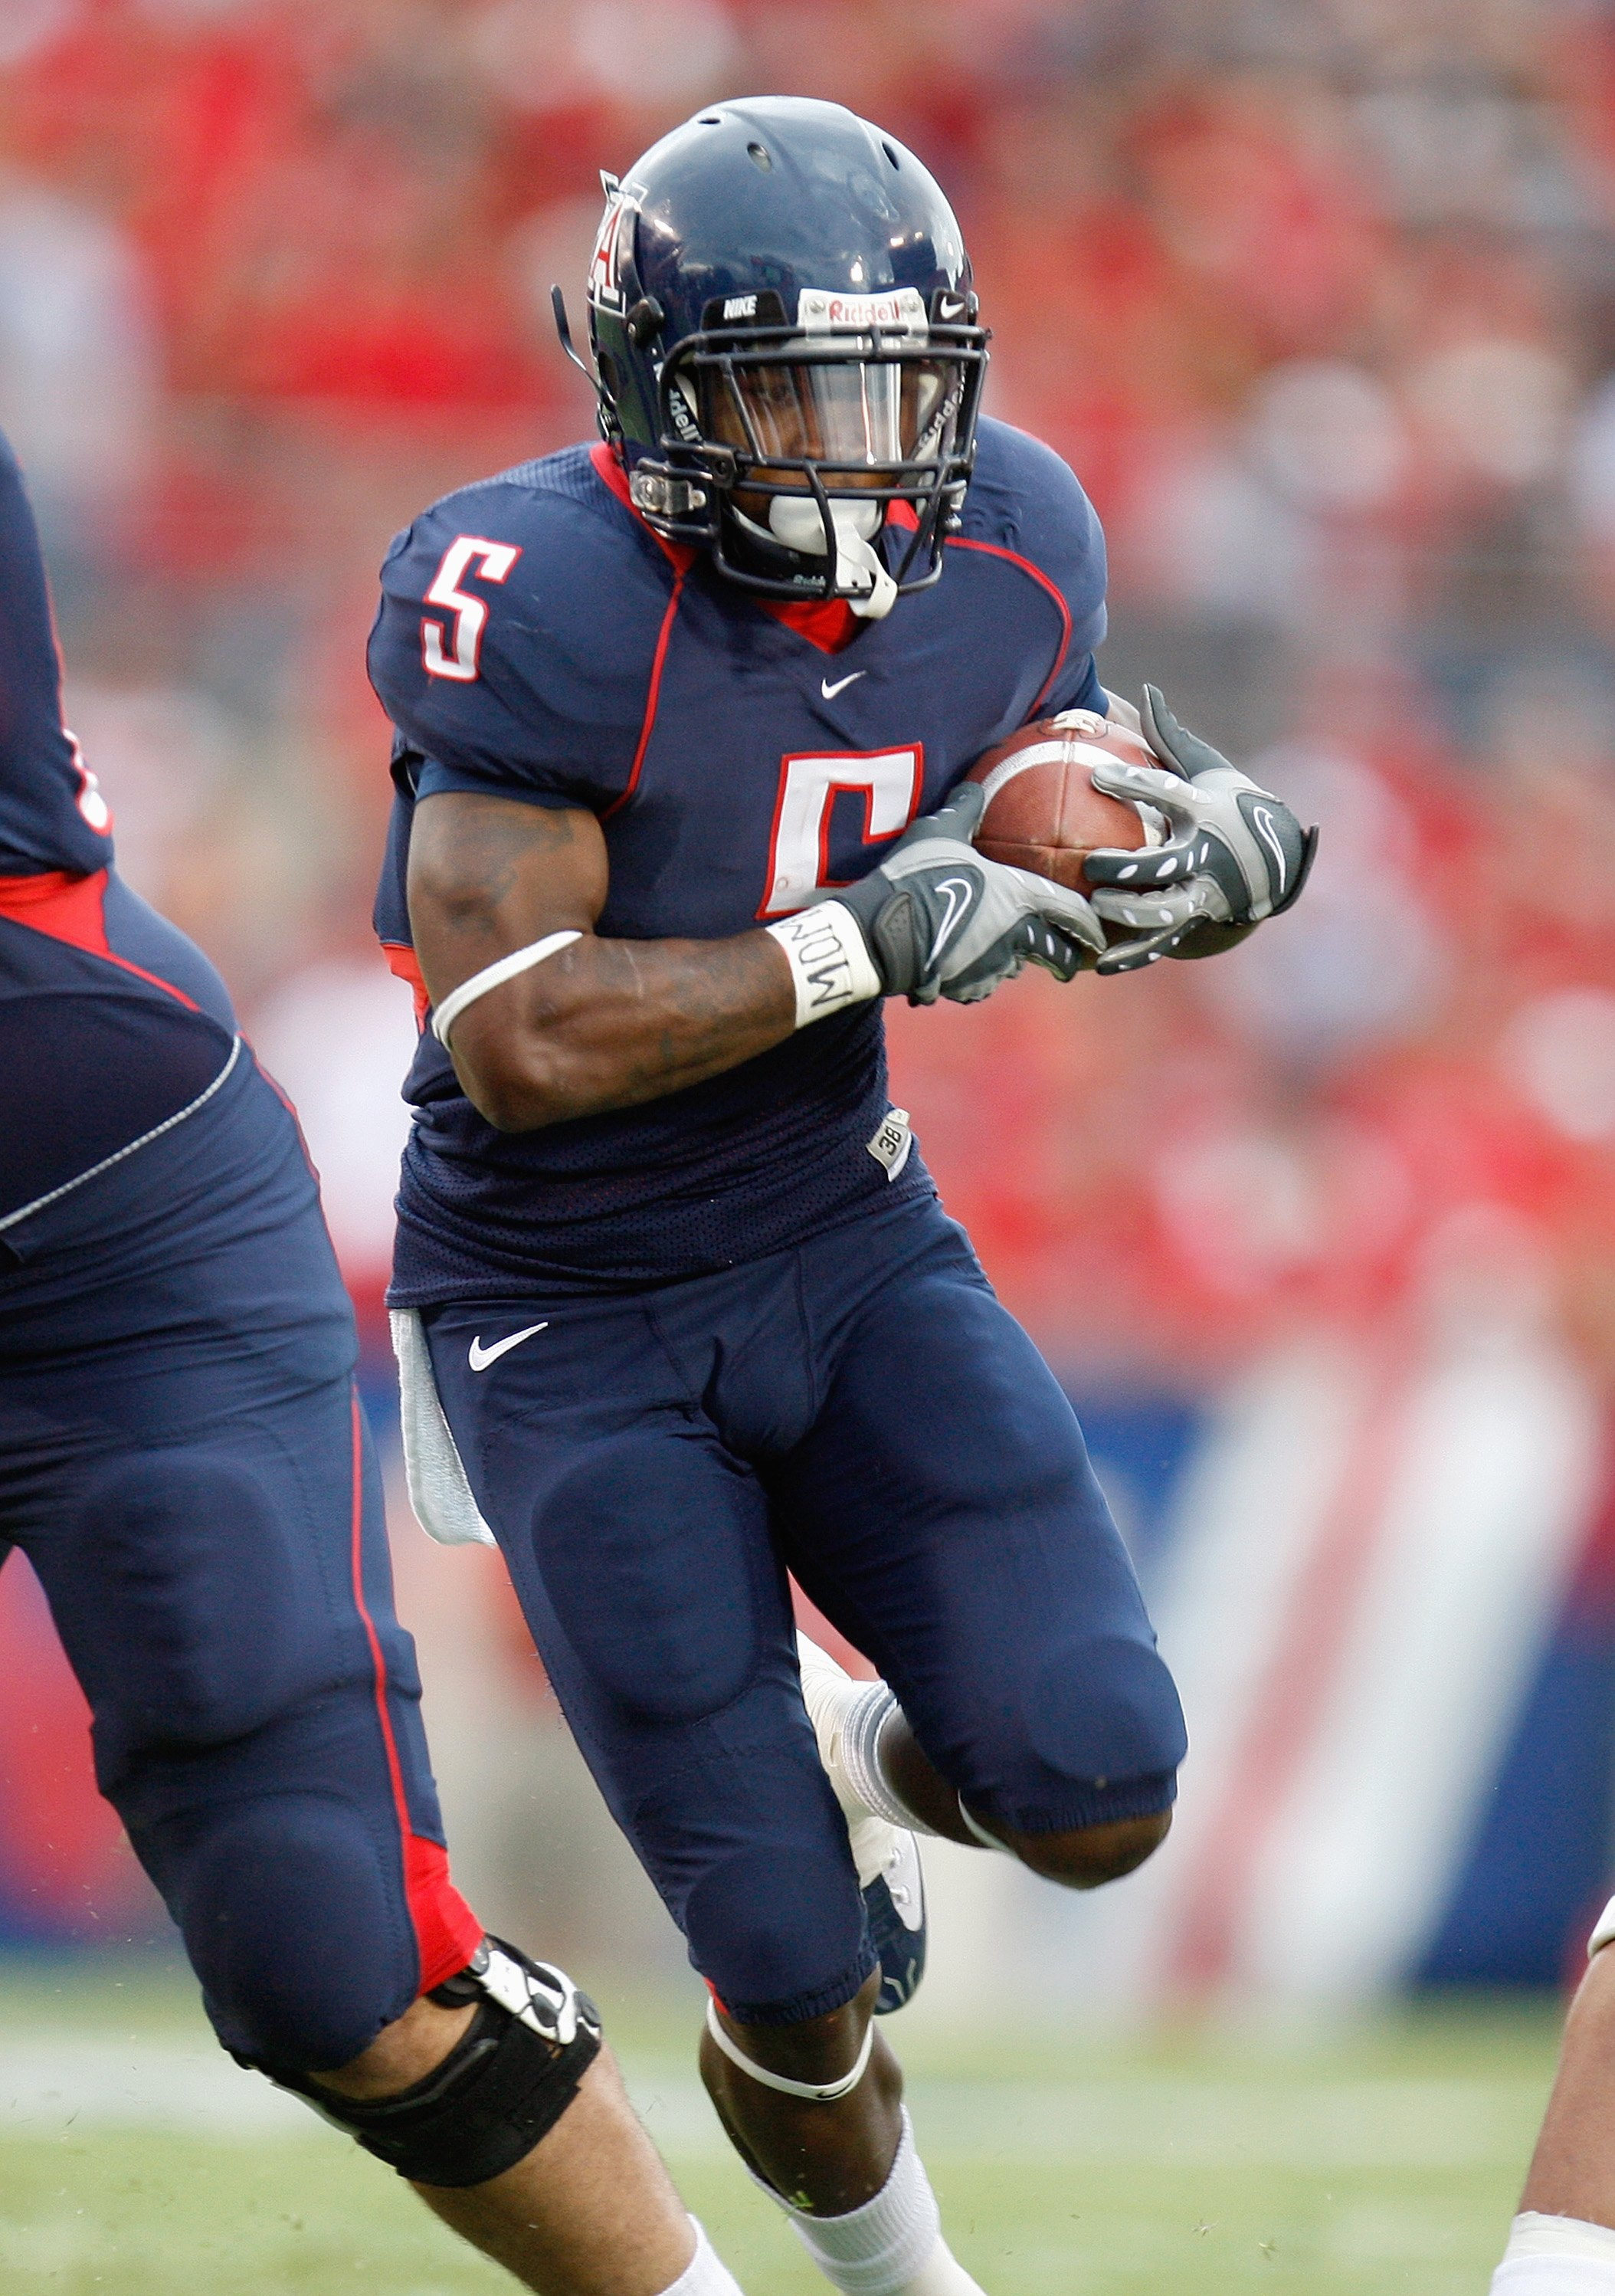 TUSCON - OCTOBER 4:  Nicolas Grigsby #5 of the Arizona Wildcats carries the ball during the game against the Washington Huskies on October 4, 2008 at Arizona Stadium in Tucson, Arizona. (Photo by: Gregory Shamus/Getty Images)